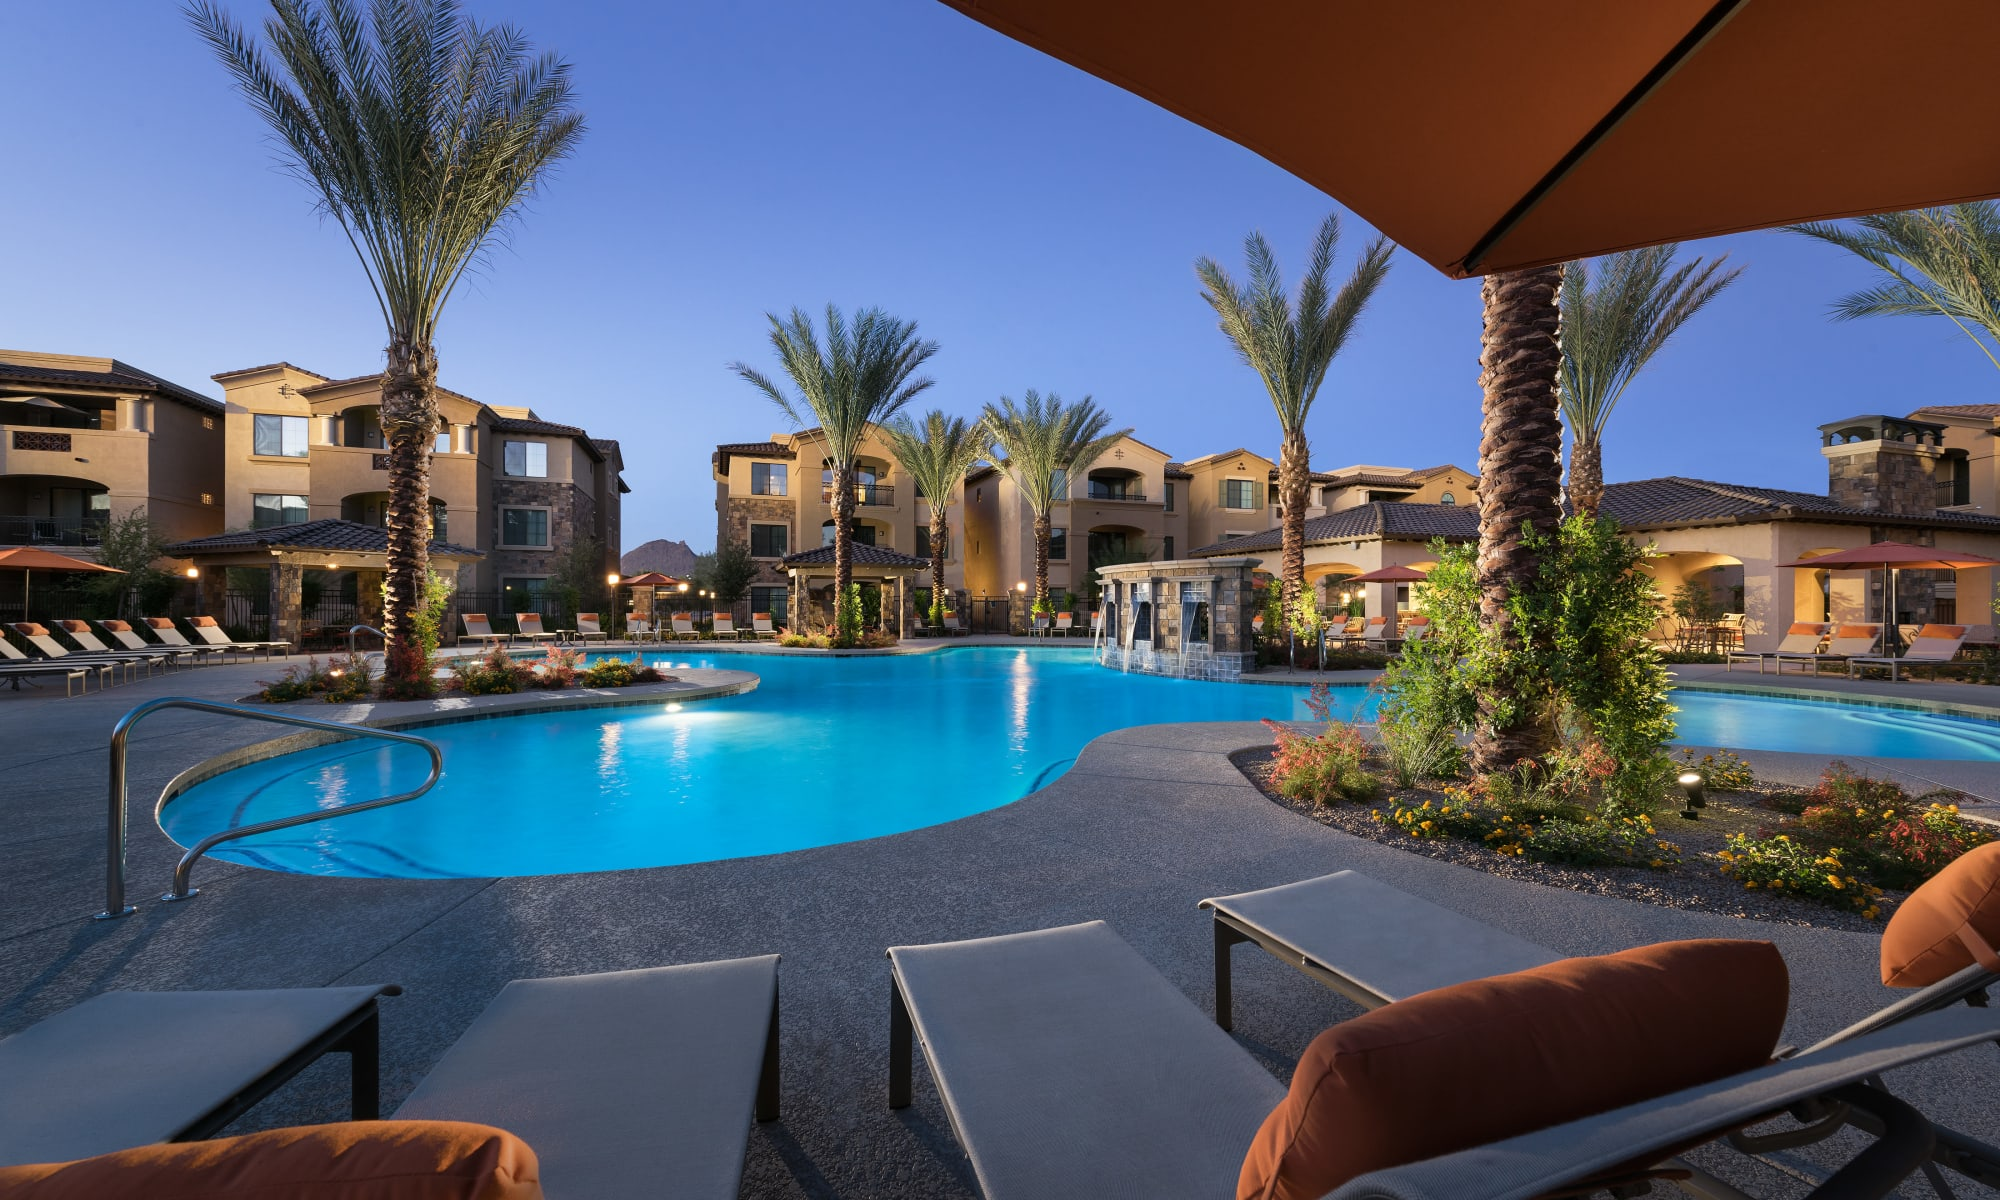 Apartments with a resort style swimming pool at San Norterra in Phoenix, Arizona